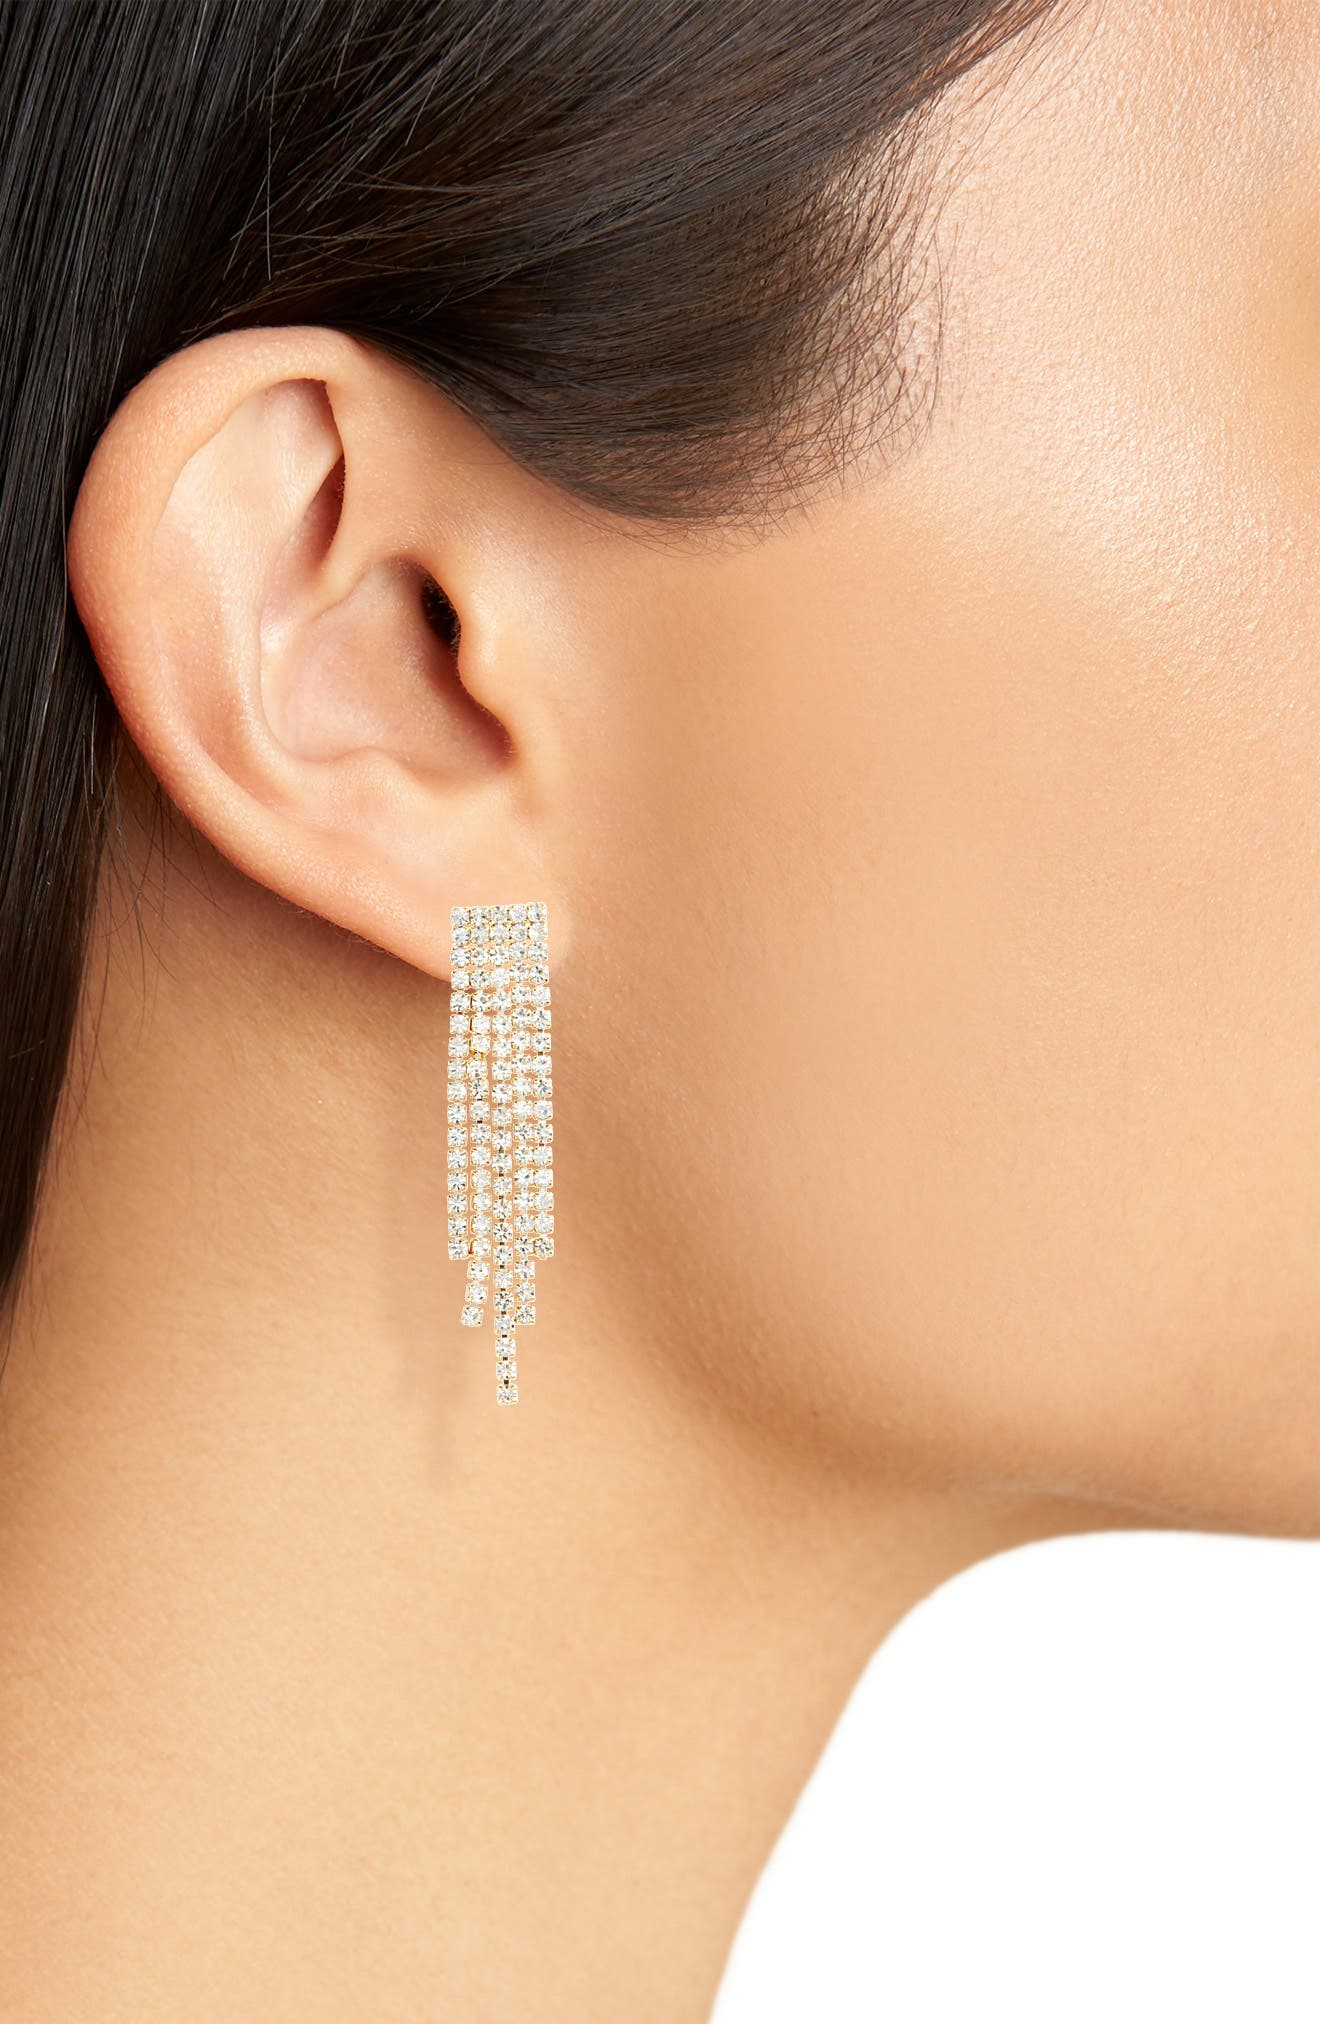 Harlow Crystal Earrings,                             Alternate thumbnail 2, color,                             GOLD/ CLEAR